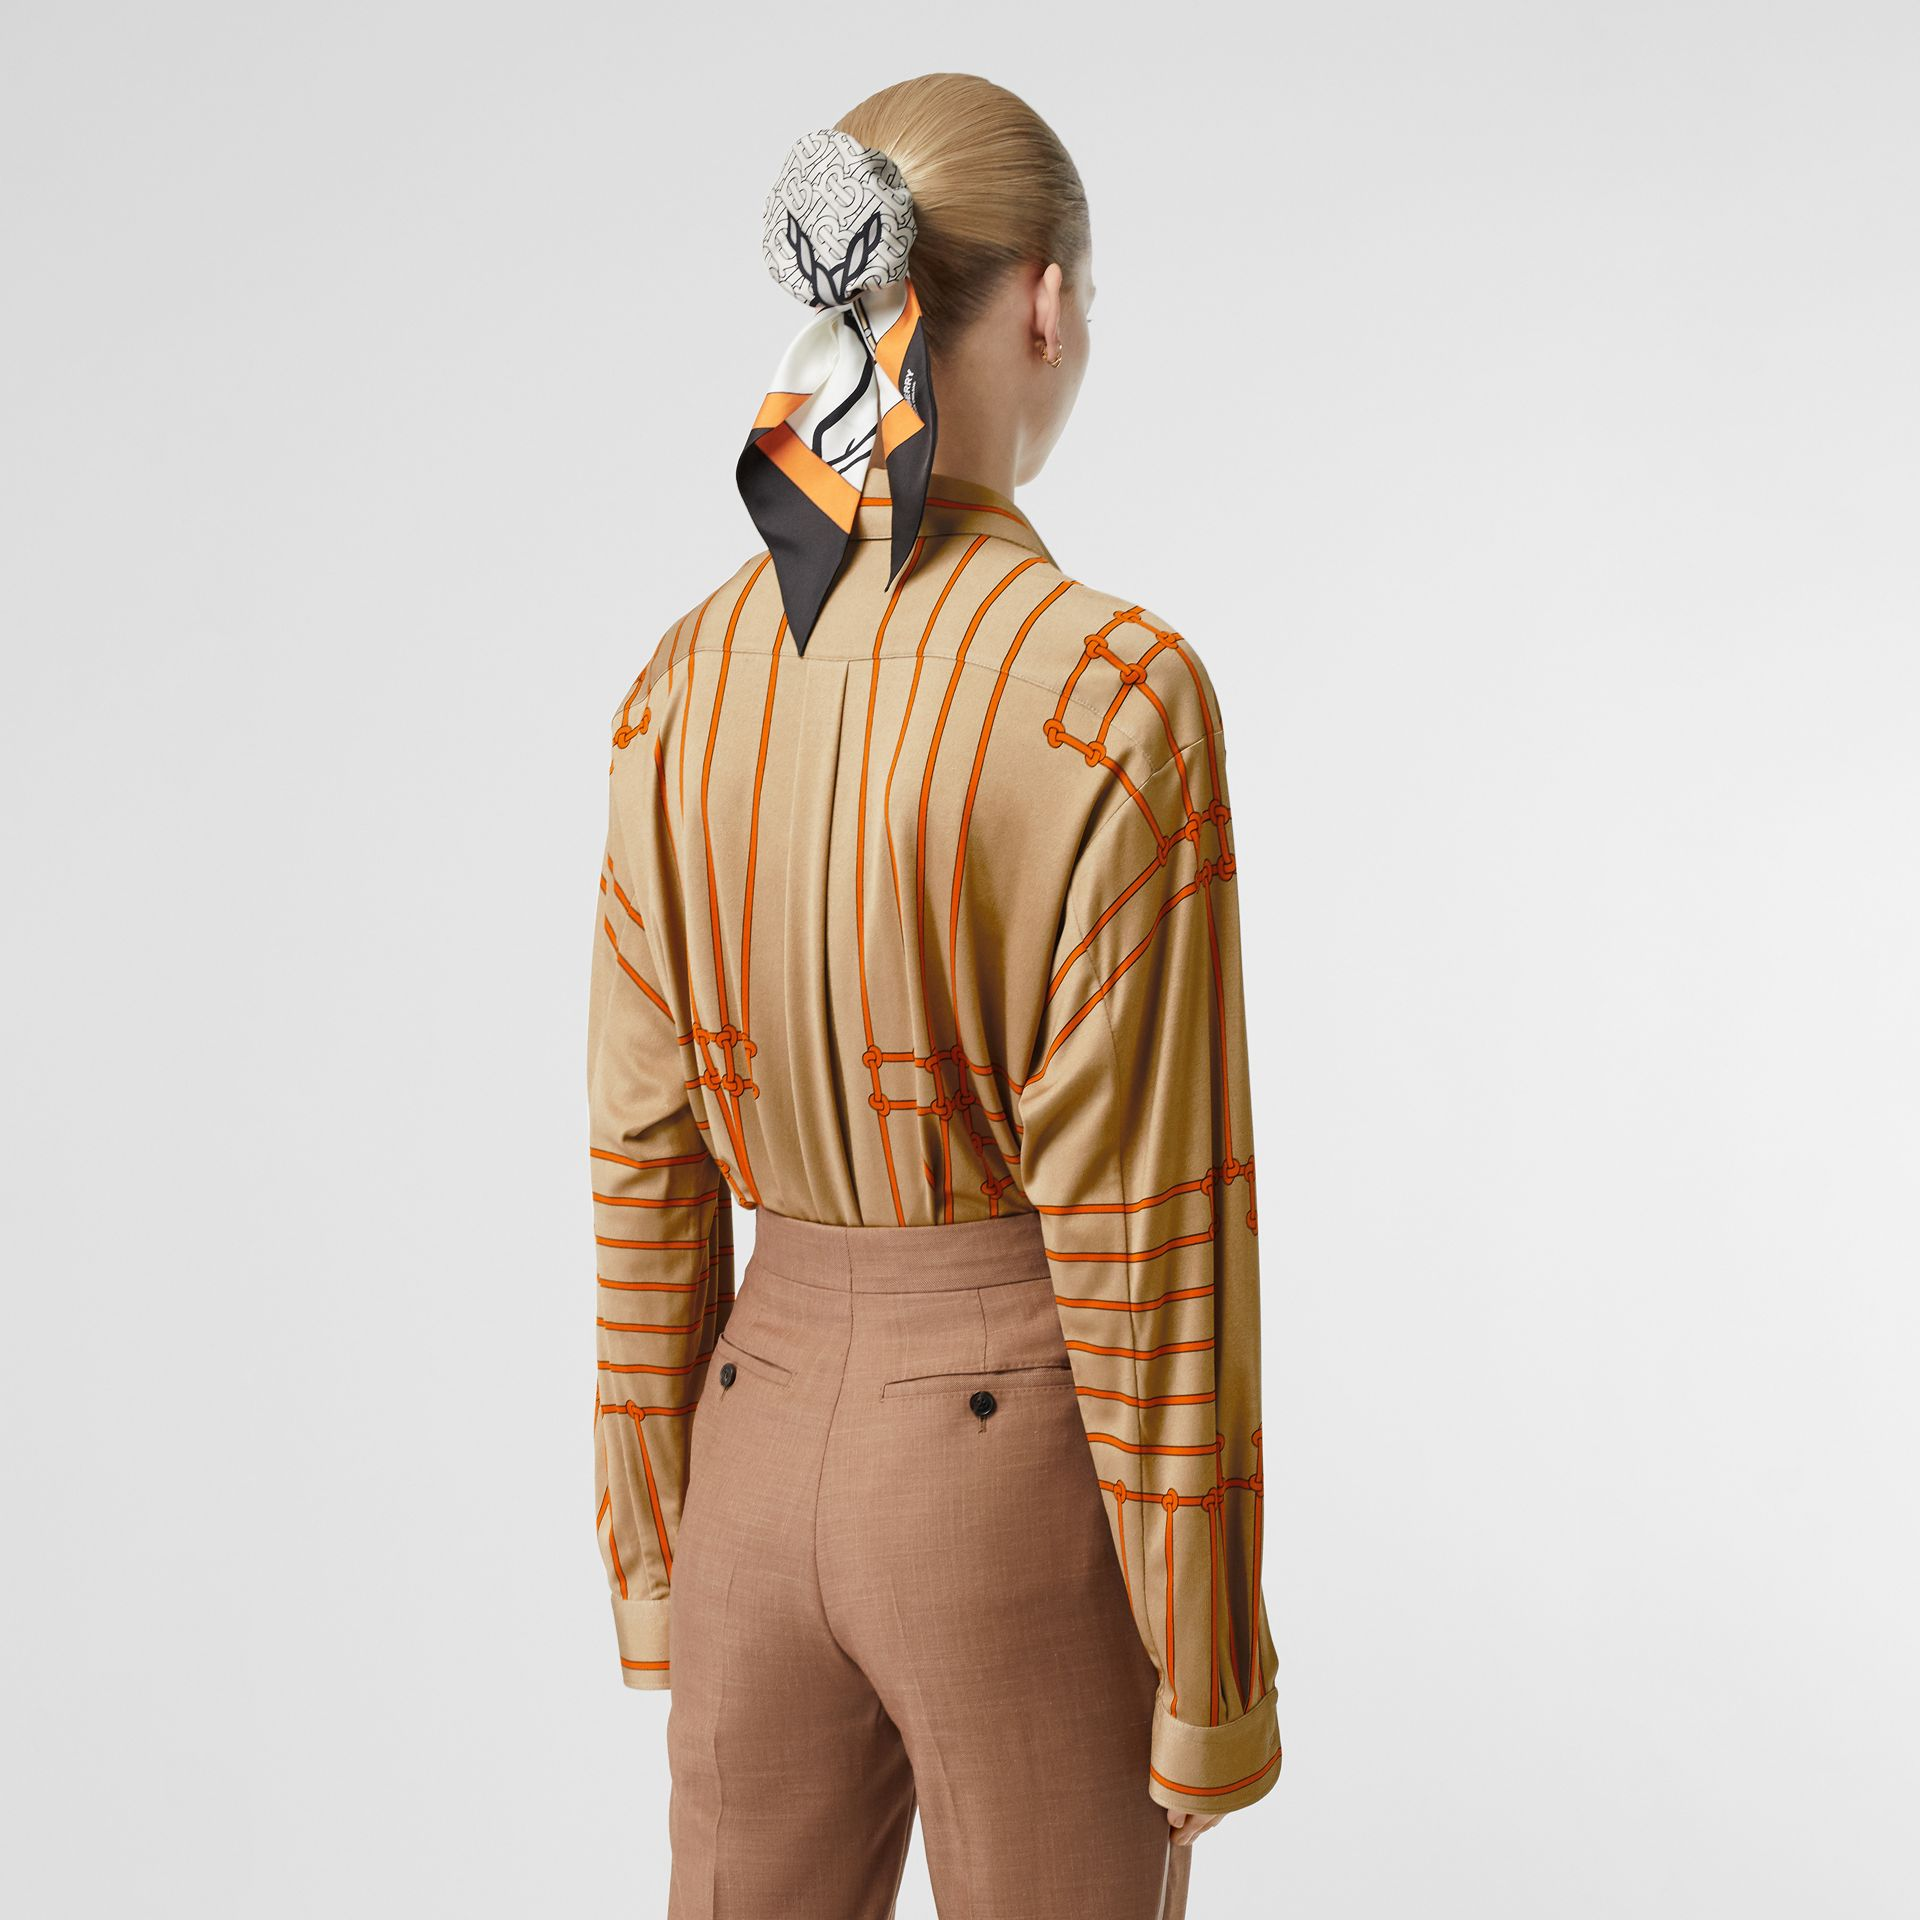 Monogram Motif Rope Print Stretch Silk Shirt in Orange - Women | Burberry - gallery image 2